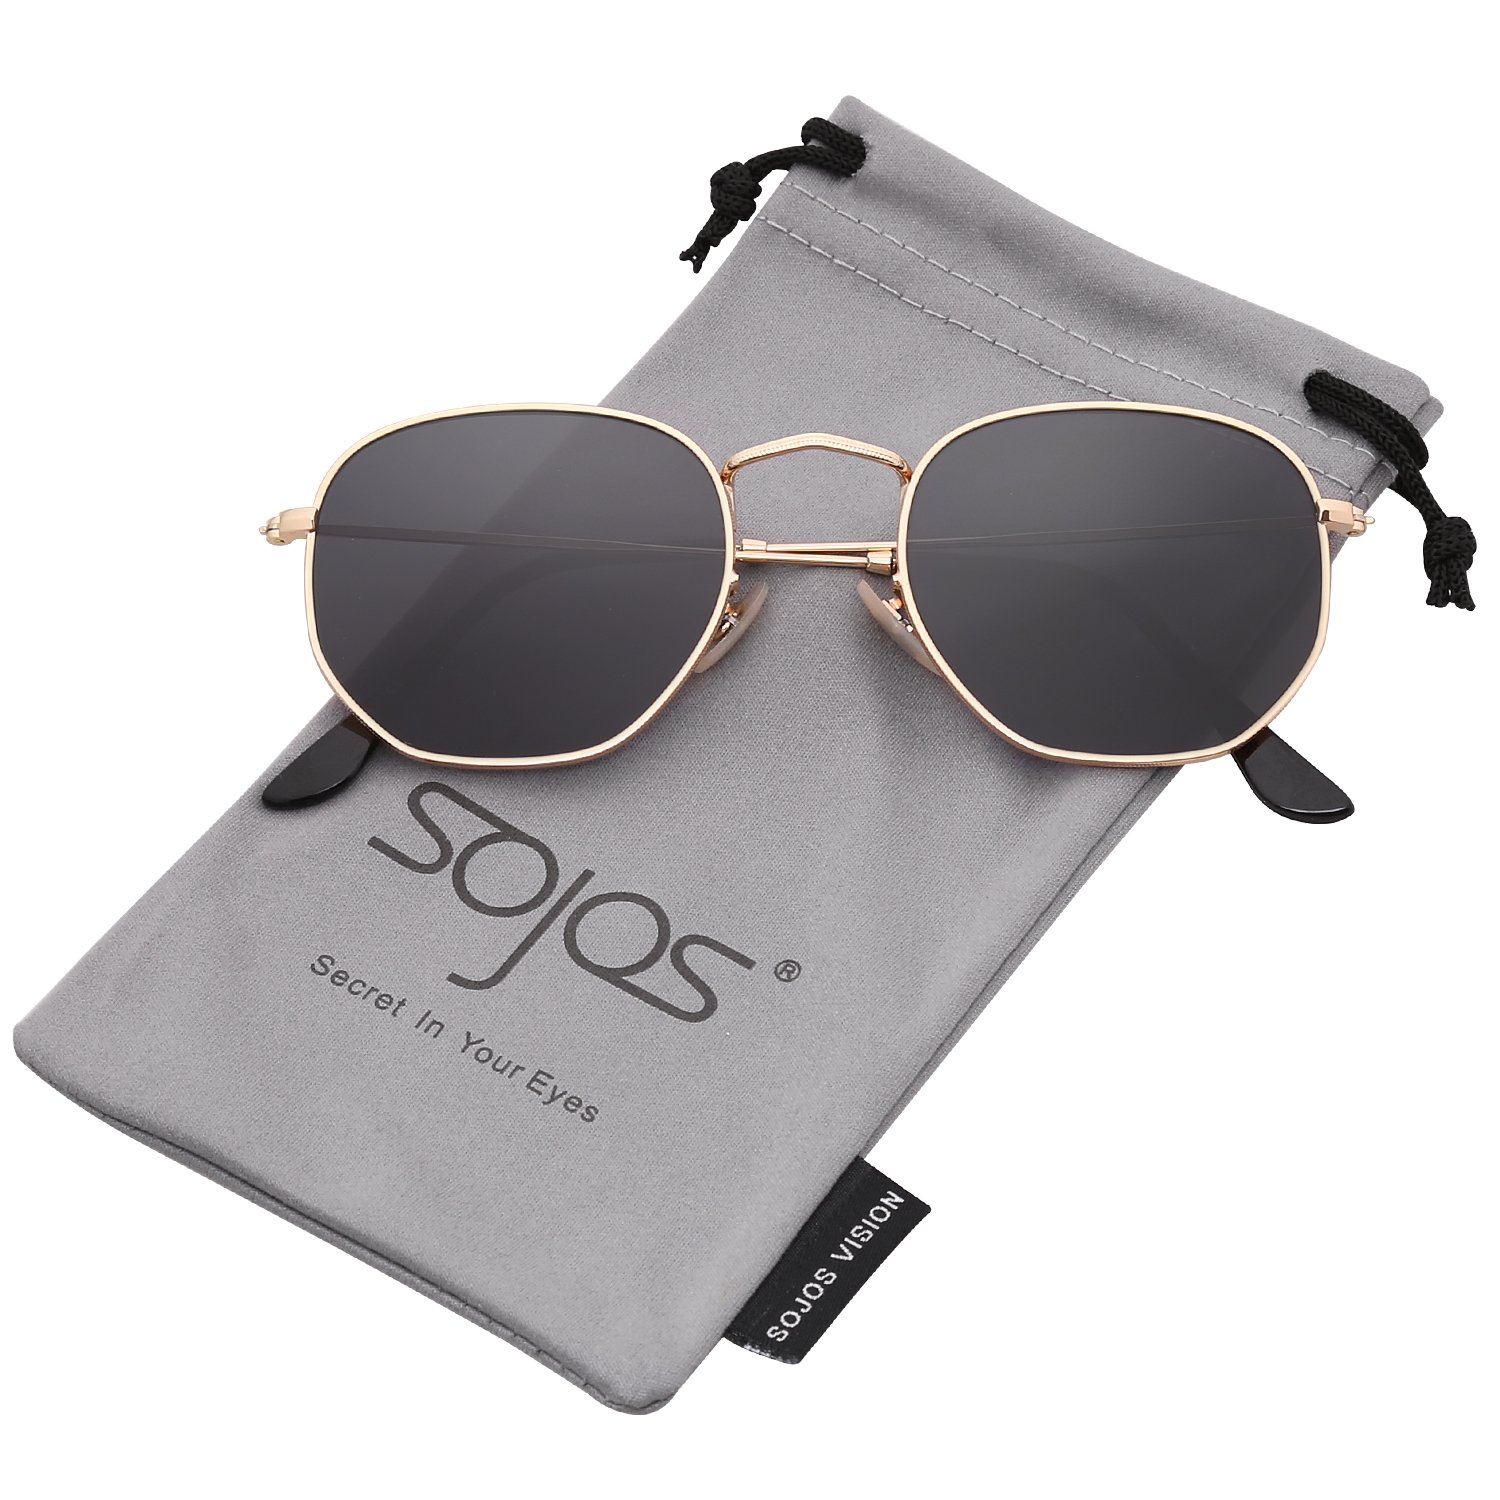 SOJOS Small Square Polarized Sunglasses for Men and Women Polygon Mirrored Lens SJ1072 SJ1077 With Gold Frame/Grey Lens